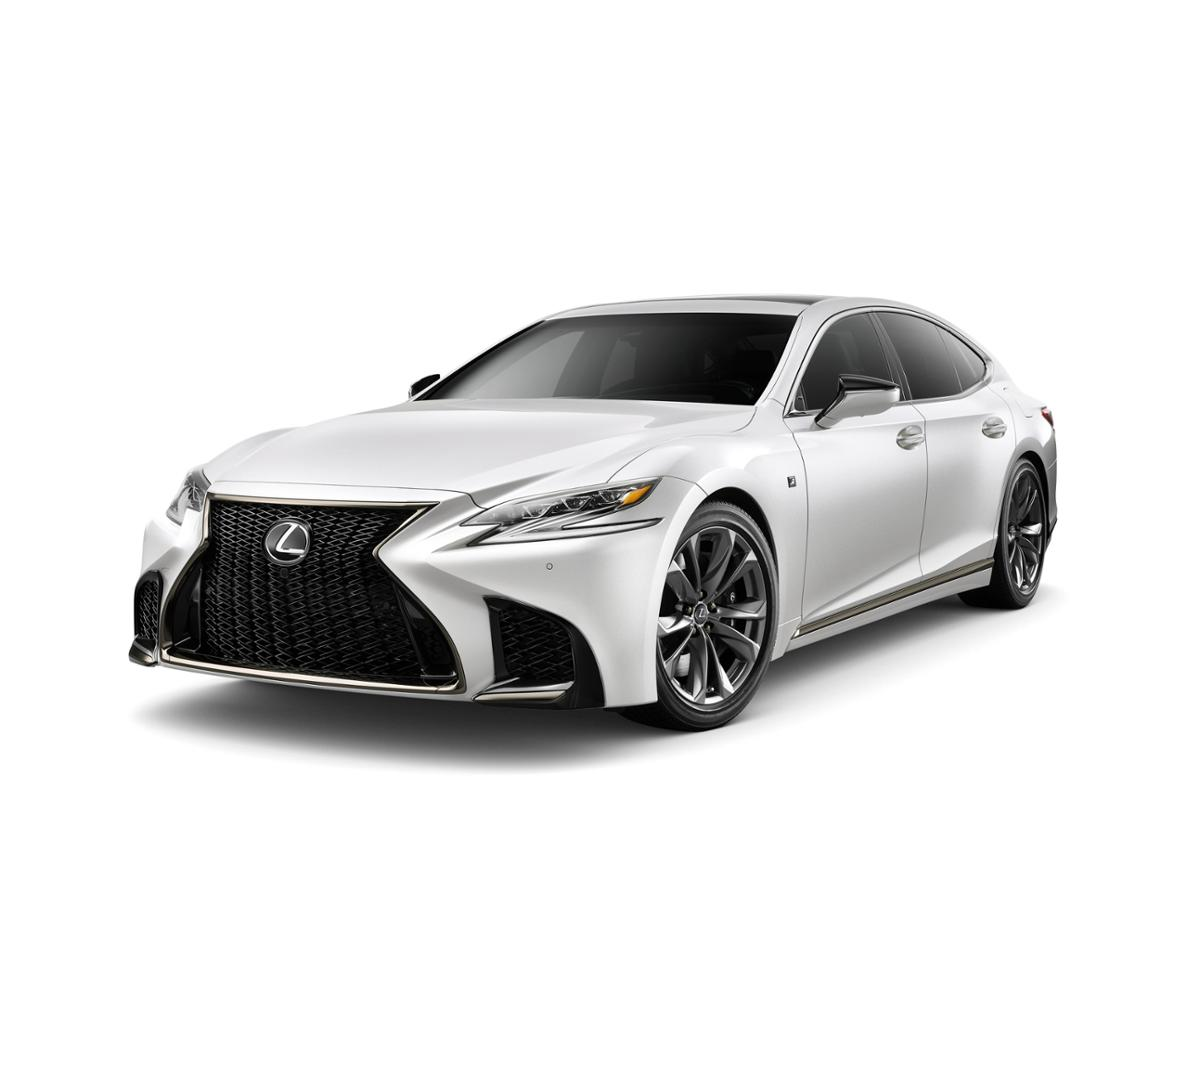 new obsidian 2017 lexus ls 460 f sport for sale fremont ca magnussen lexus of fremont. Black Bedroom Furniture Sets. Home Design Ideas